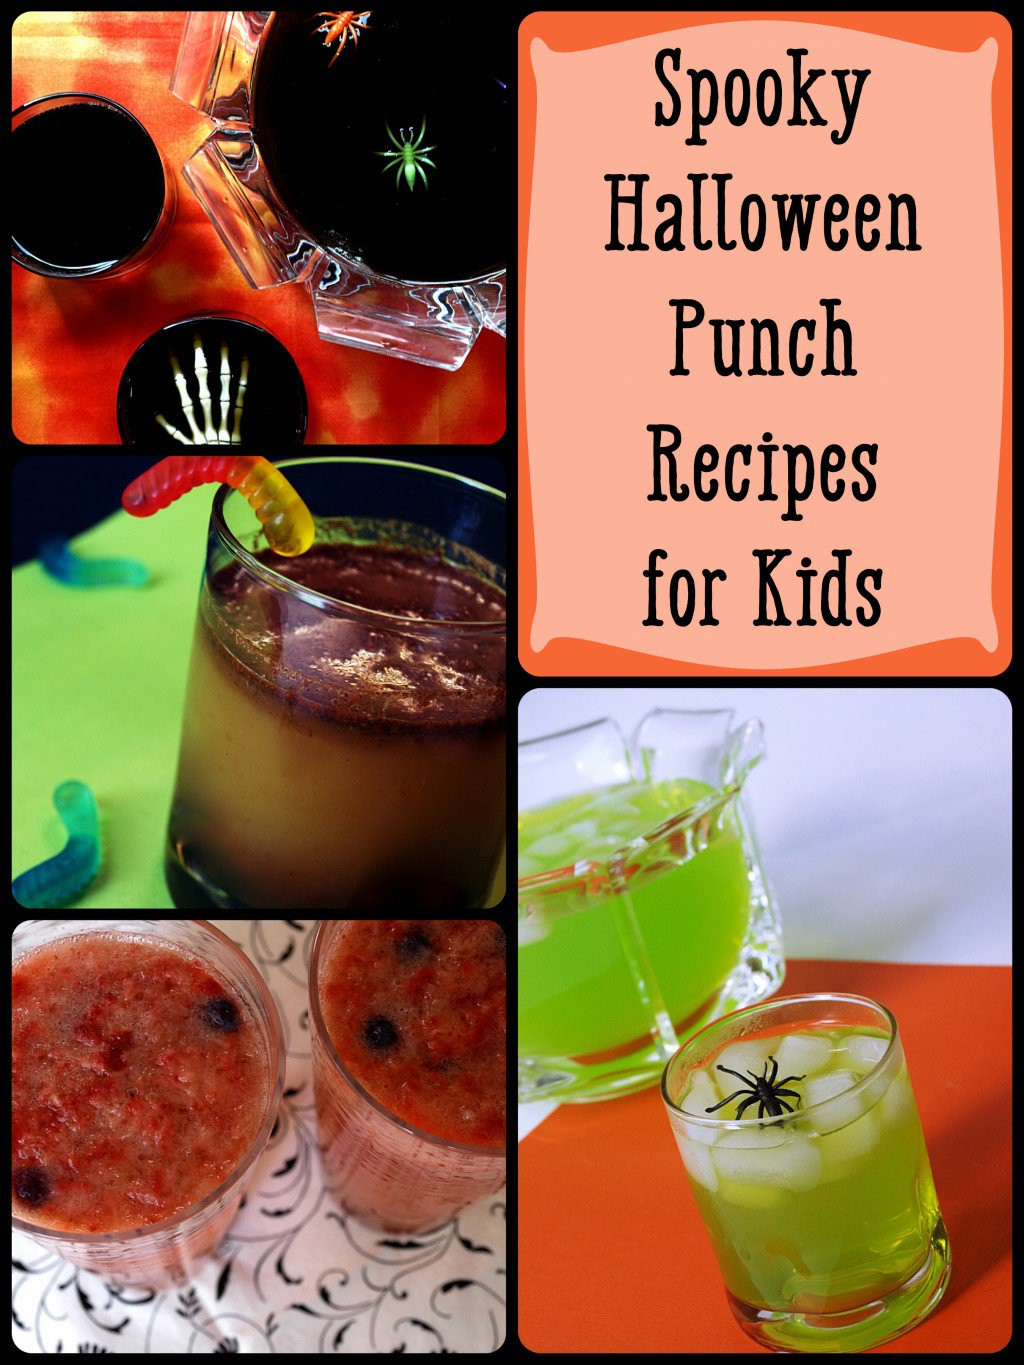 Halloween Food And Drinks  5 Spooky Halloween Punch Recipes and Drink Ideas for Kids